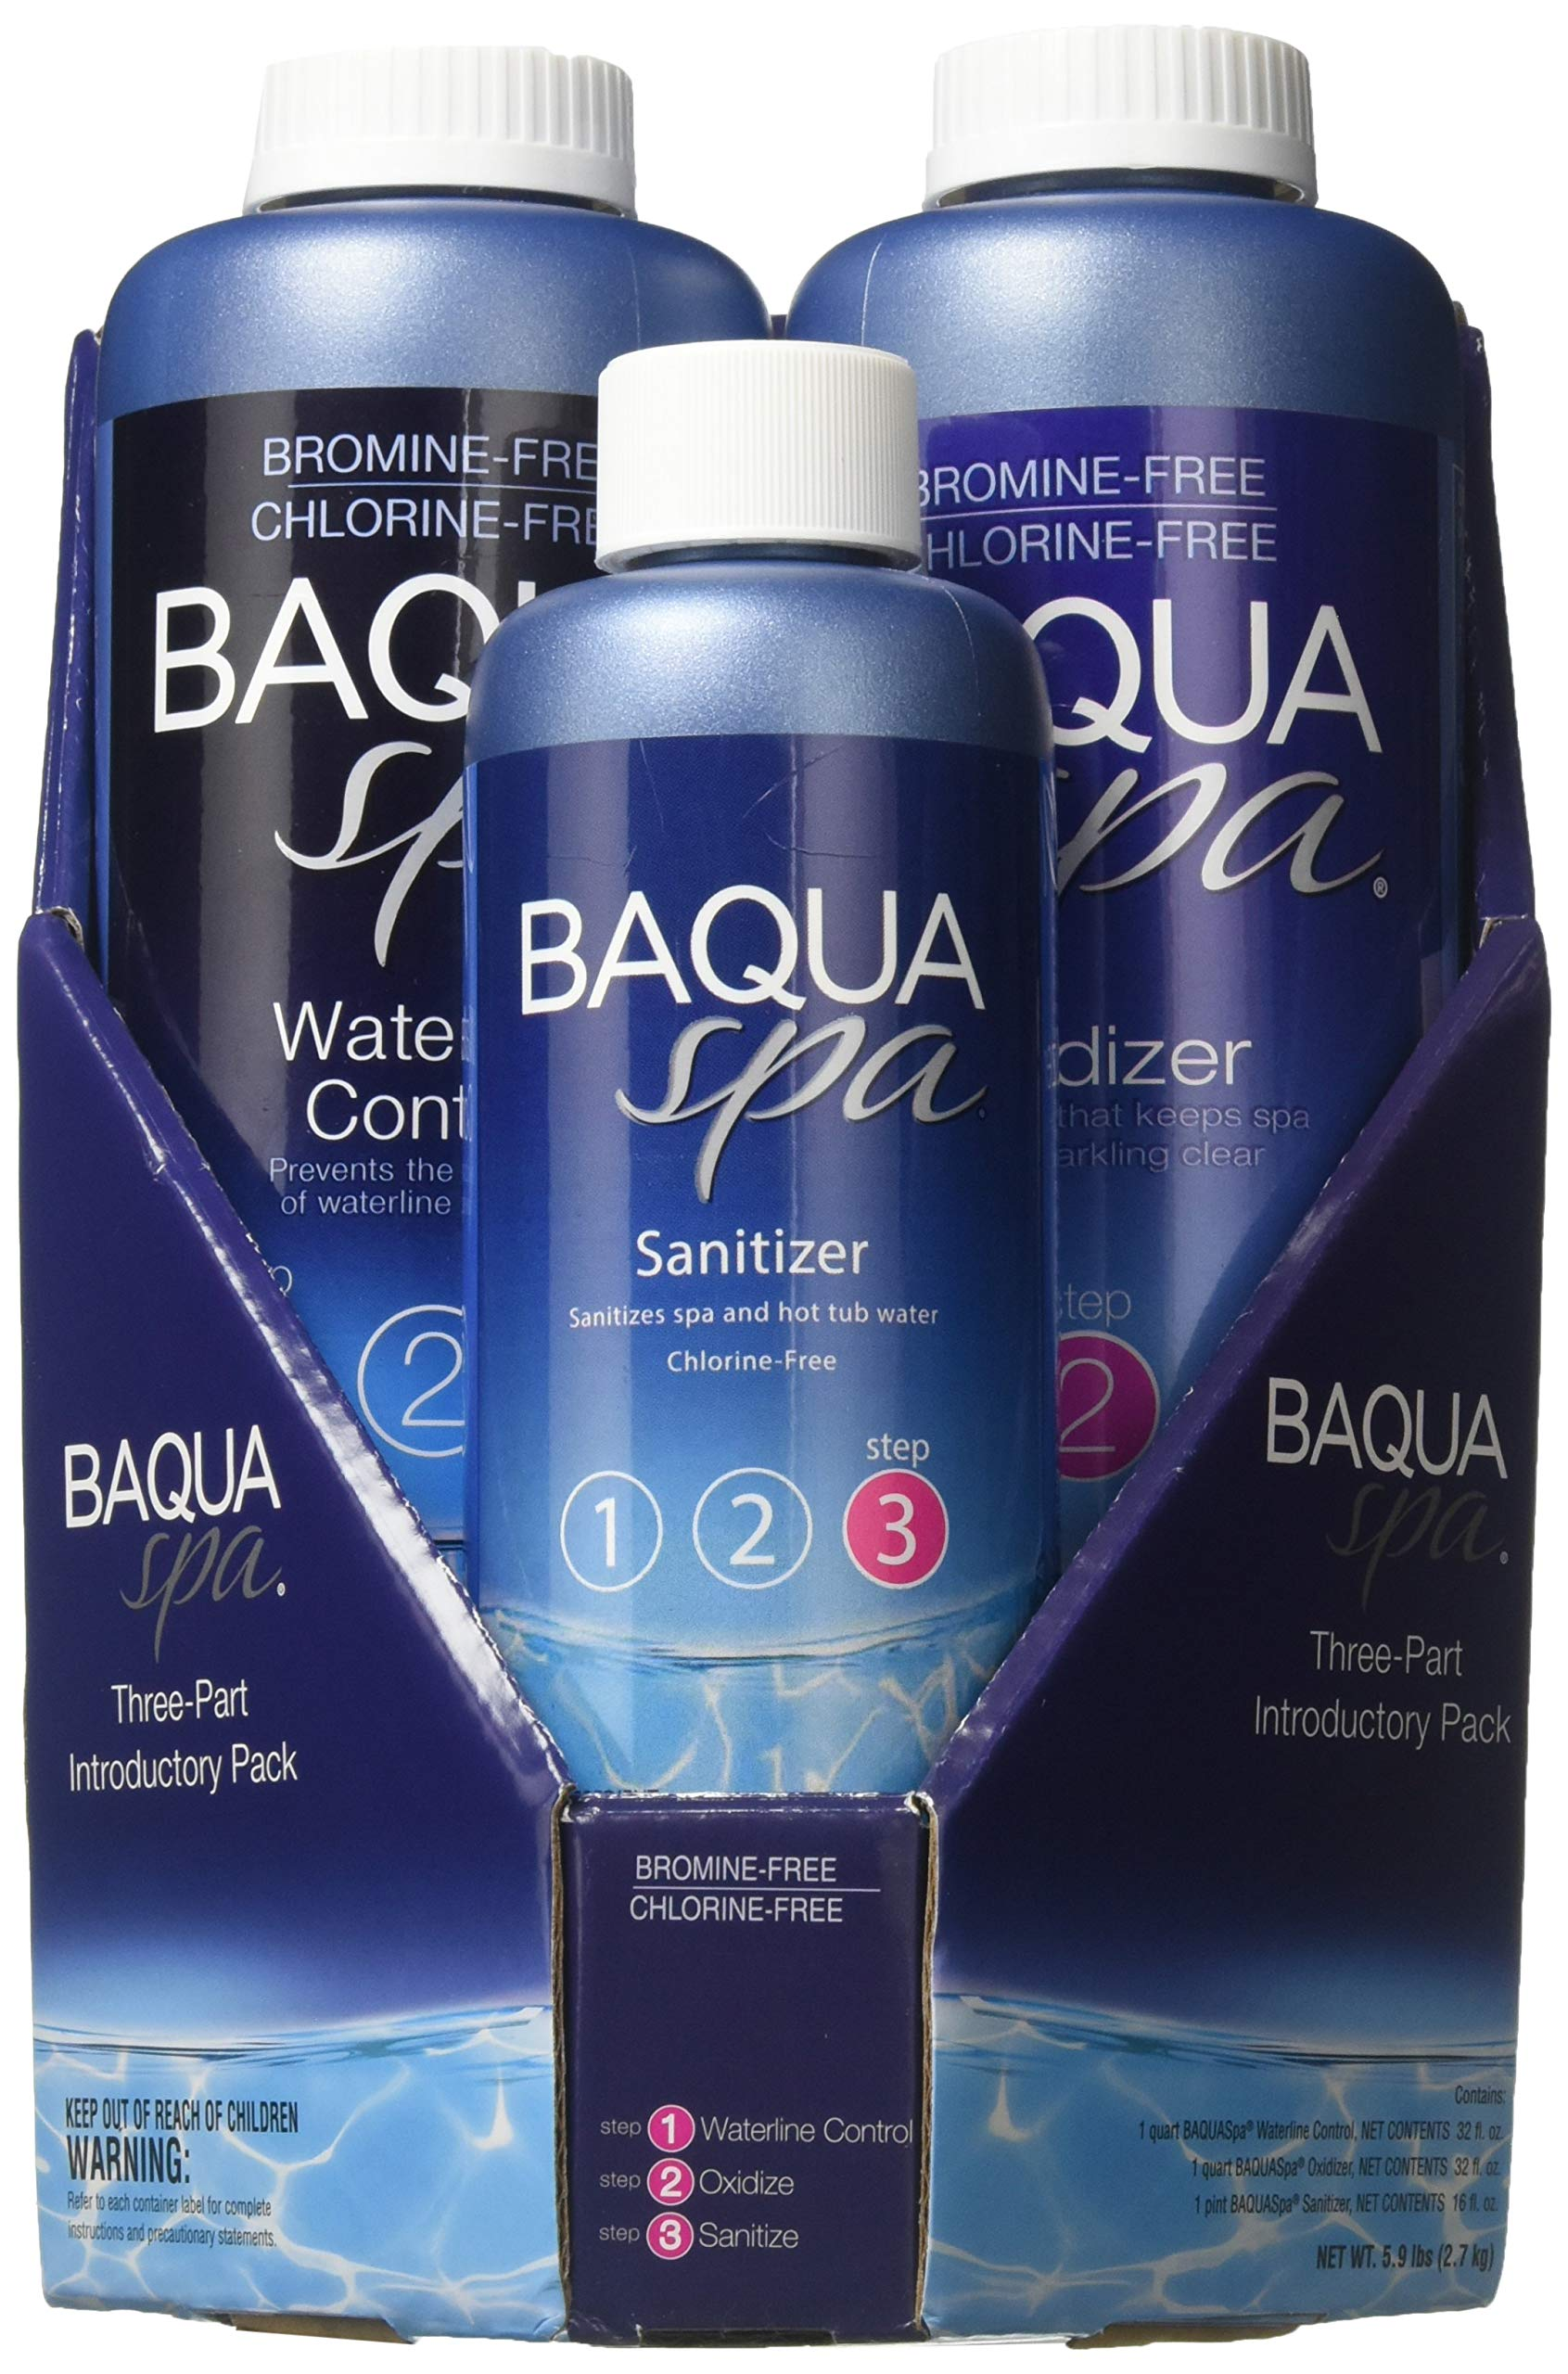 Baqua Spa 88863 3-Part Introductory Pack Spa Maintenance, Clear by Baqua Spa